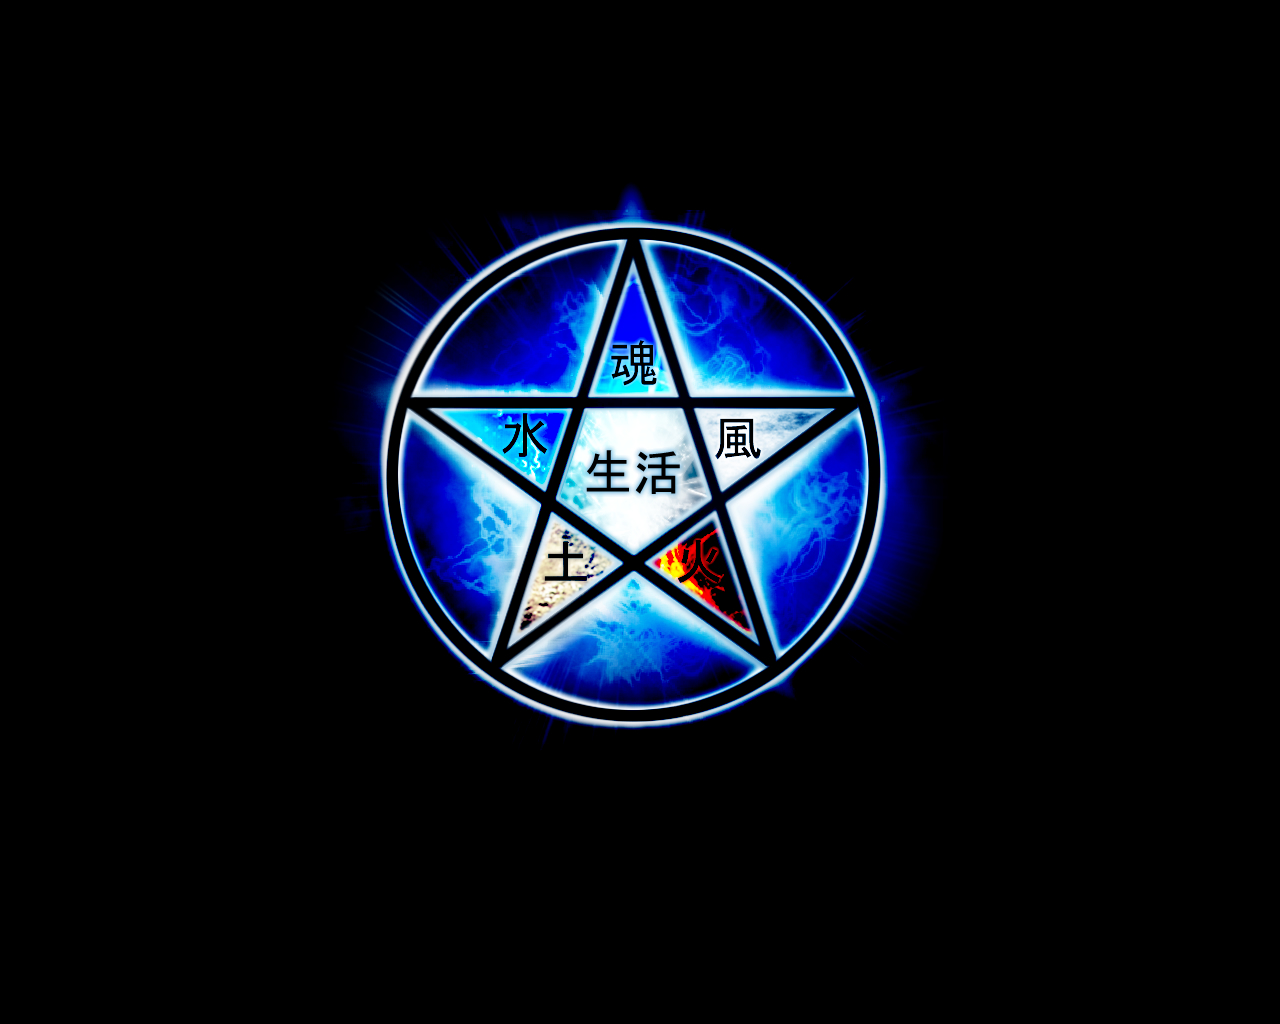 Dragon Pentacle Wallpaper Pentagram wallpaper by 1280x1024